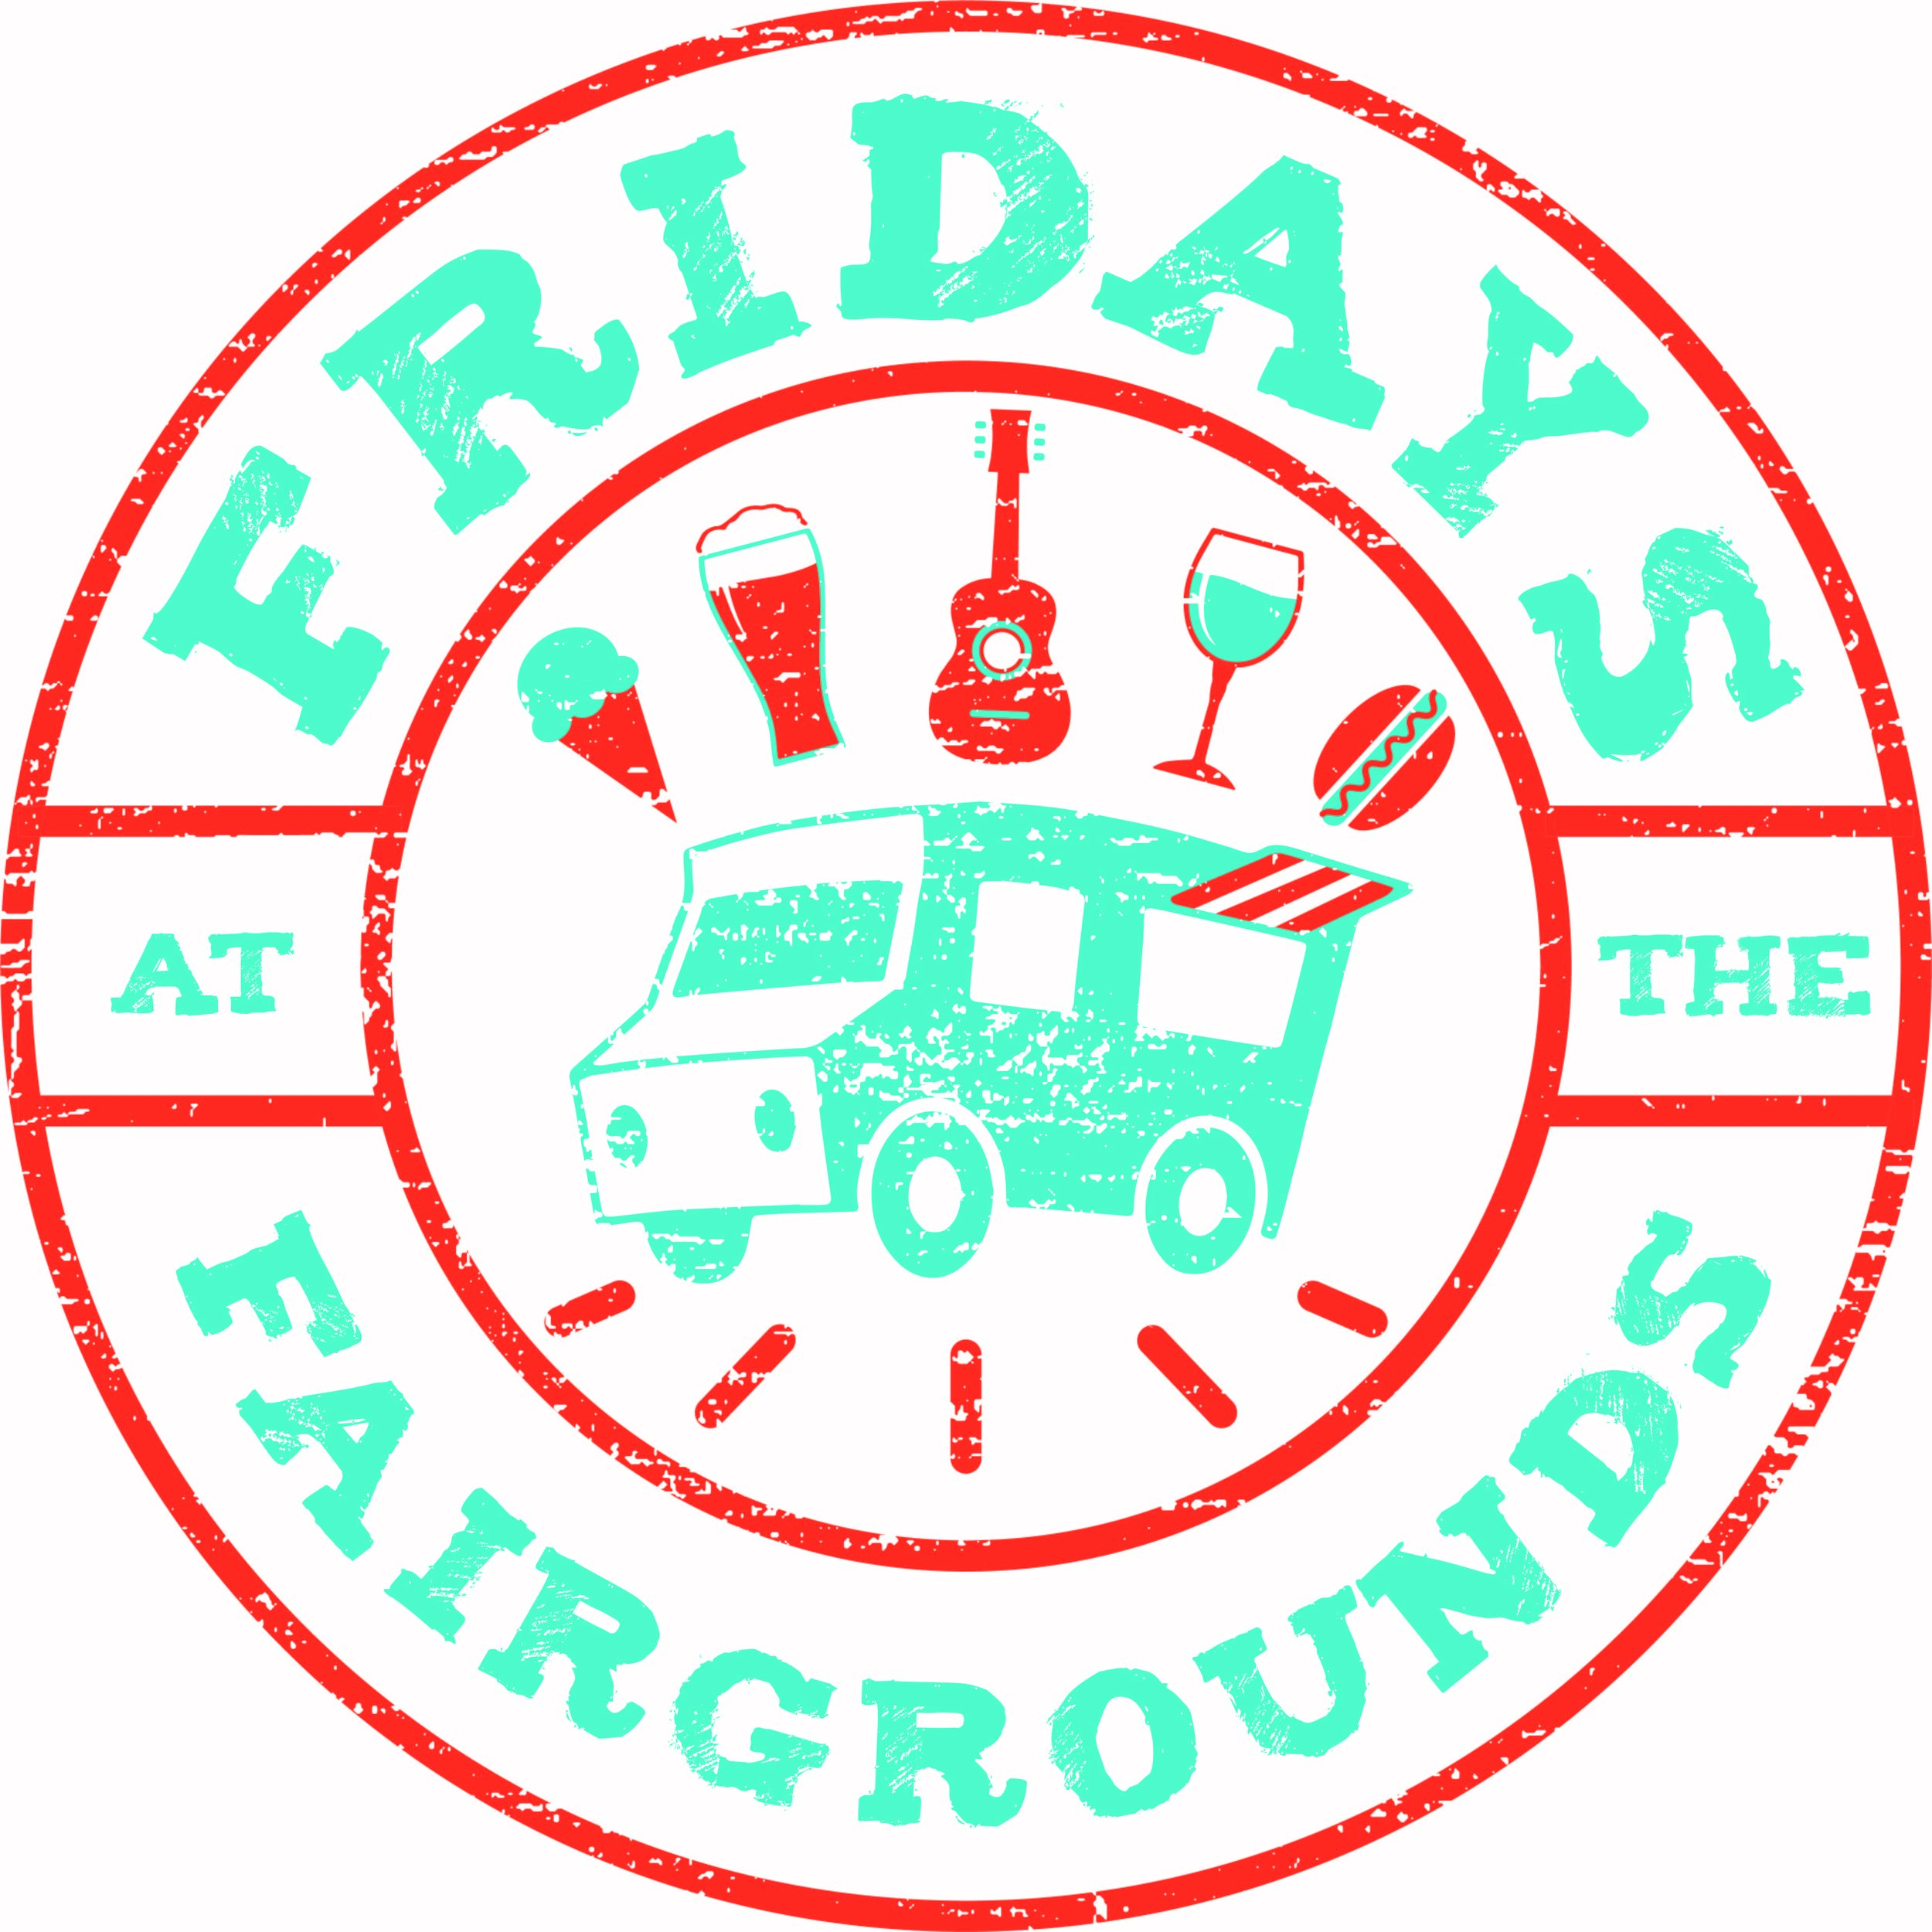 3rd friday April - October - Fridays at the Fairgrounds presents a diverse audience. It gives you the opportunity to showcase your business while building a relationship with residents and the community as a whole.